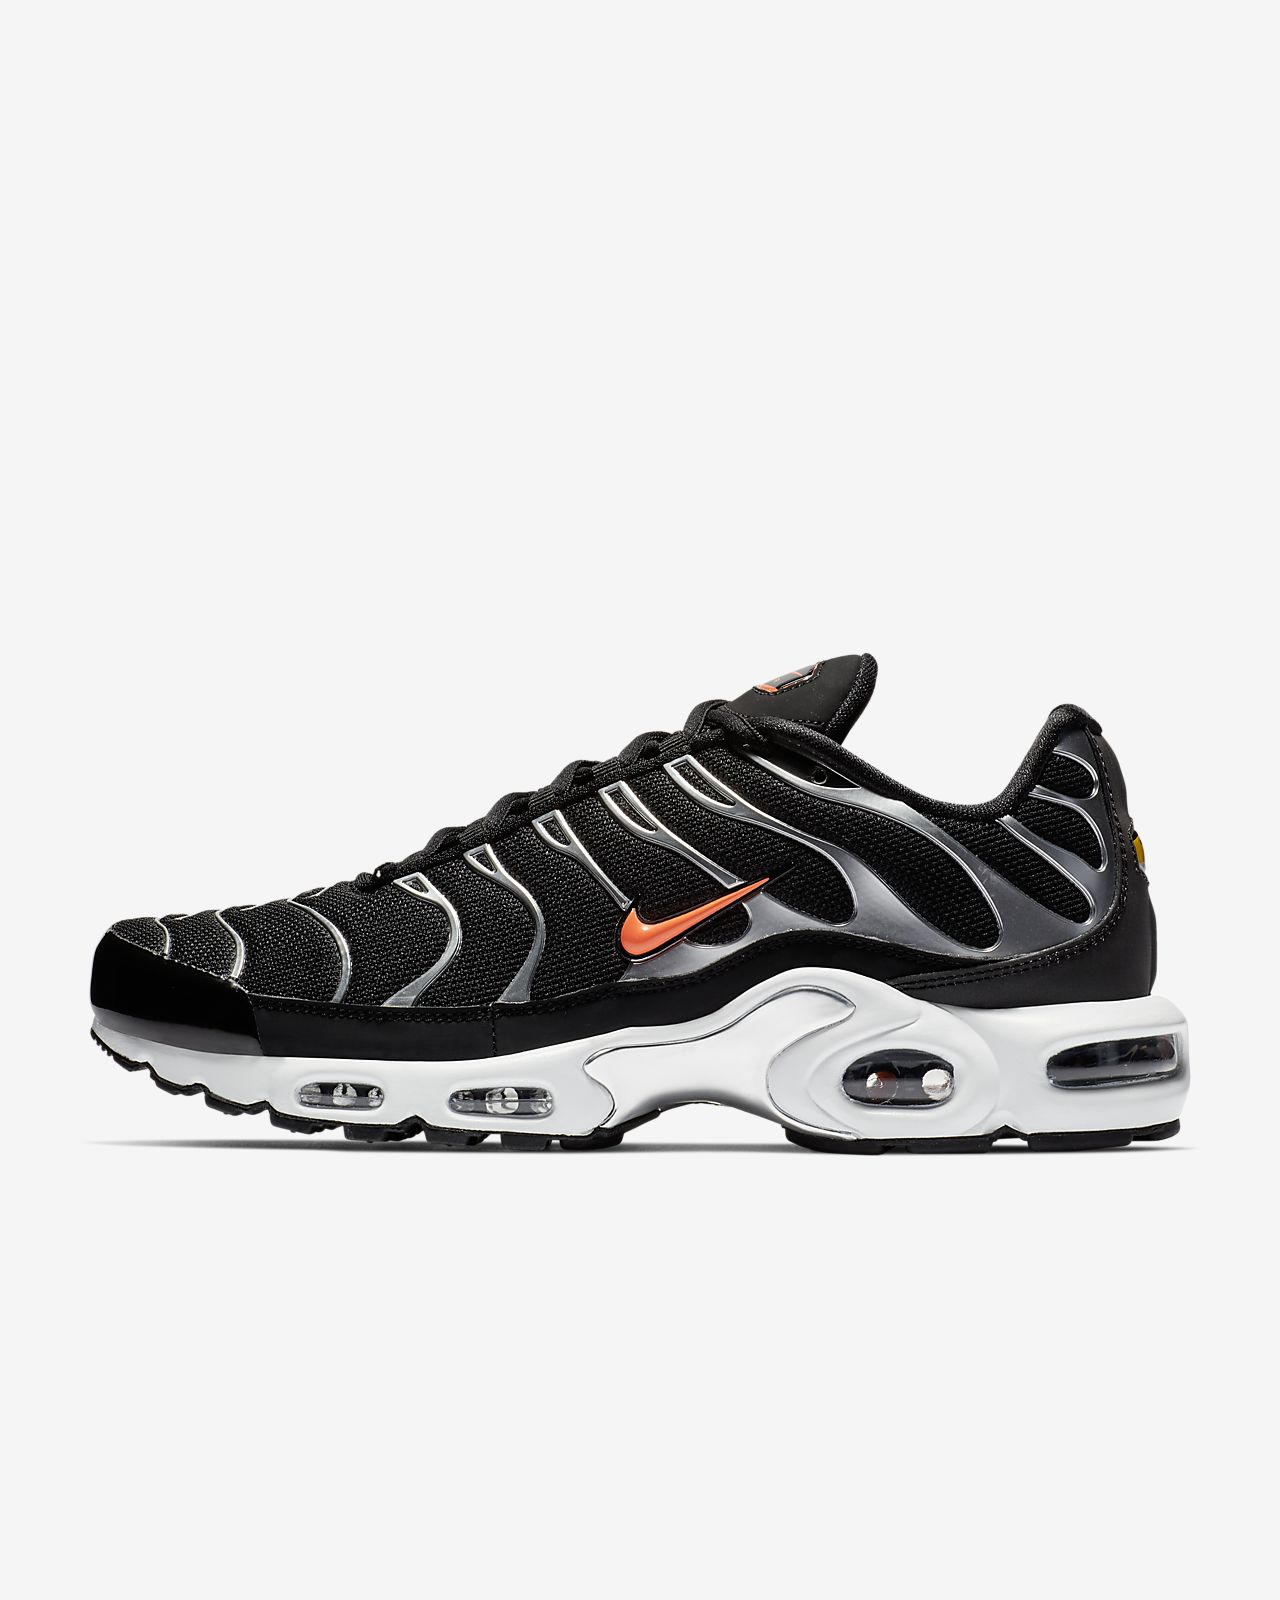 6a777ee693 Nike Air Max Plus TN SE Men's Shoe. Nike.com GB